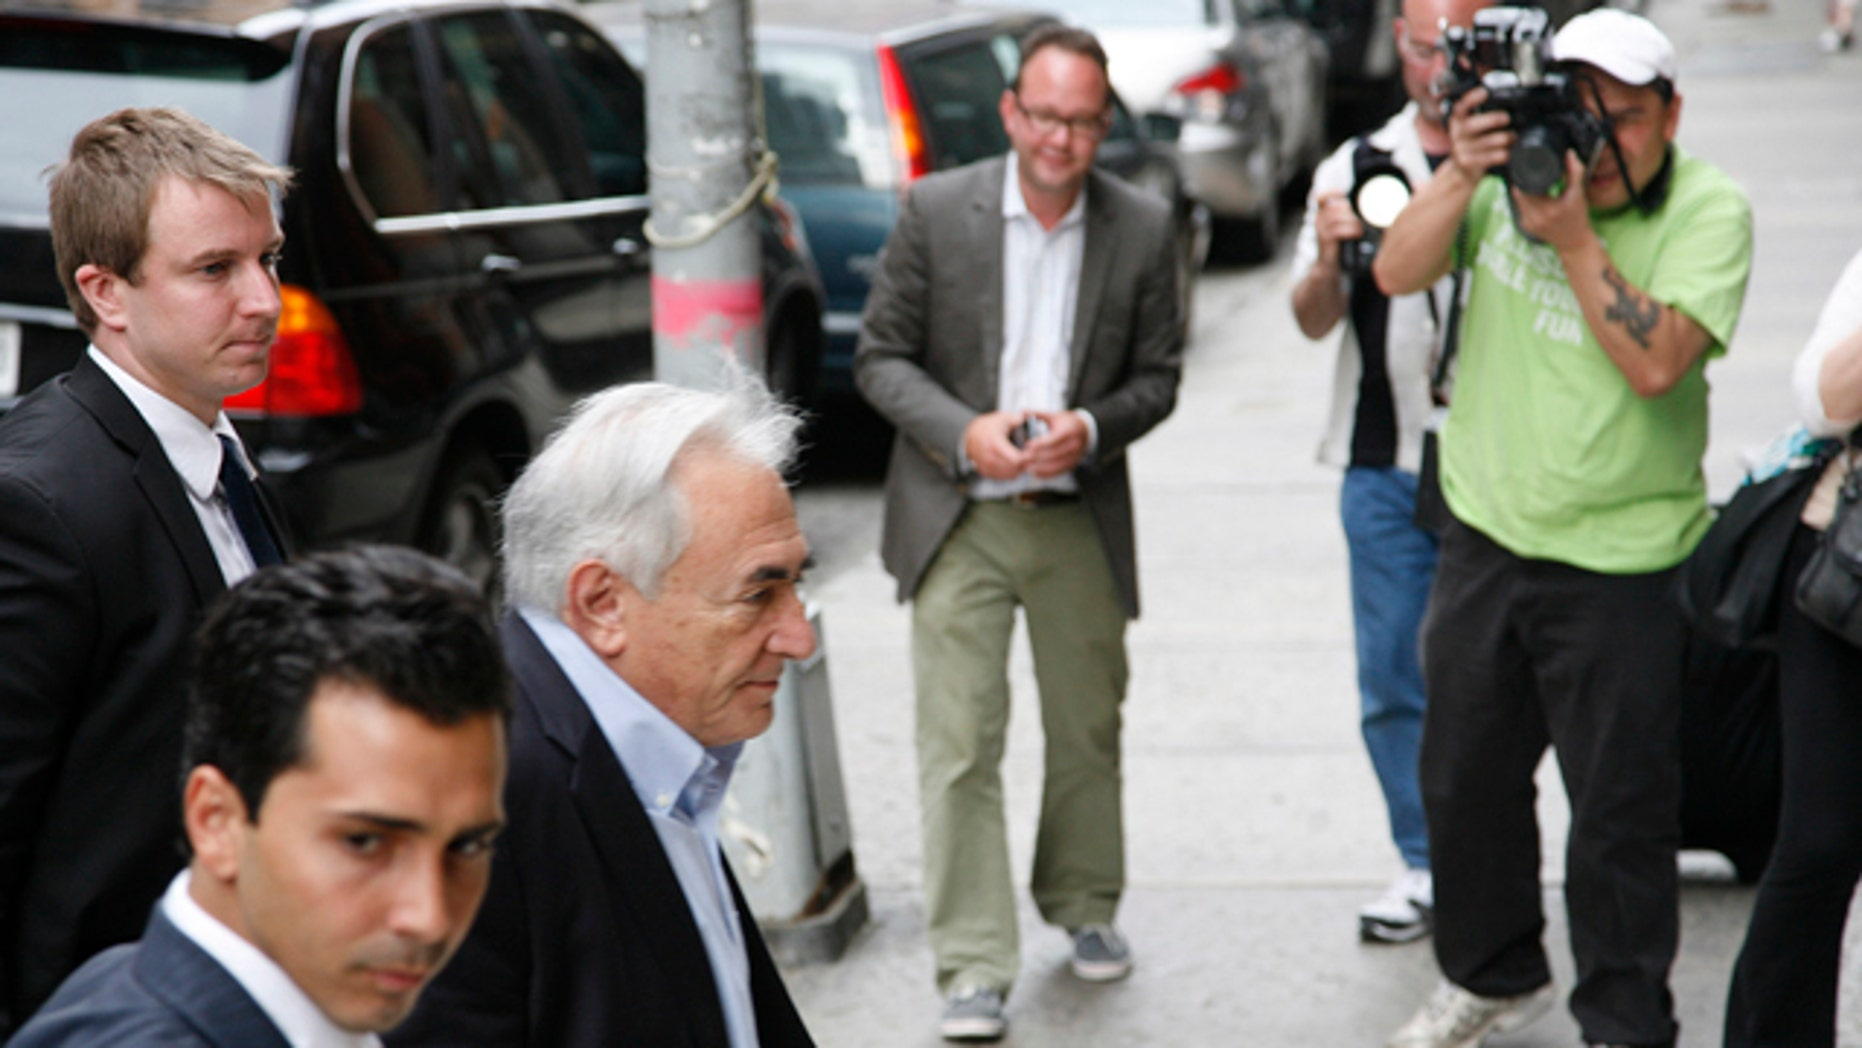 July 2: Doninique Strauss-Kahn returns to his house in the Tribeca section of downtown Manhattan.